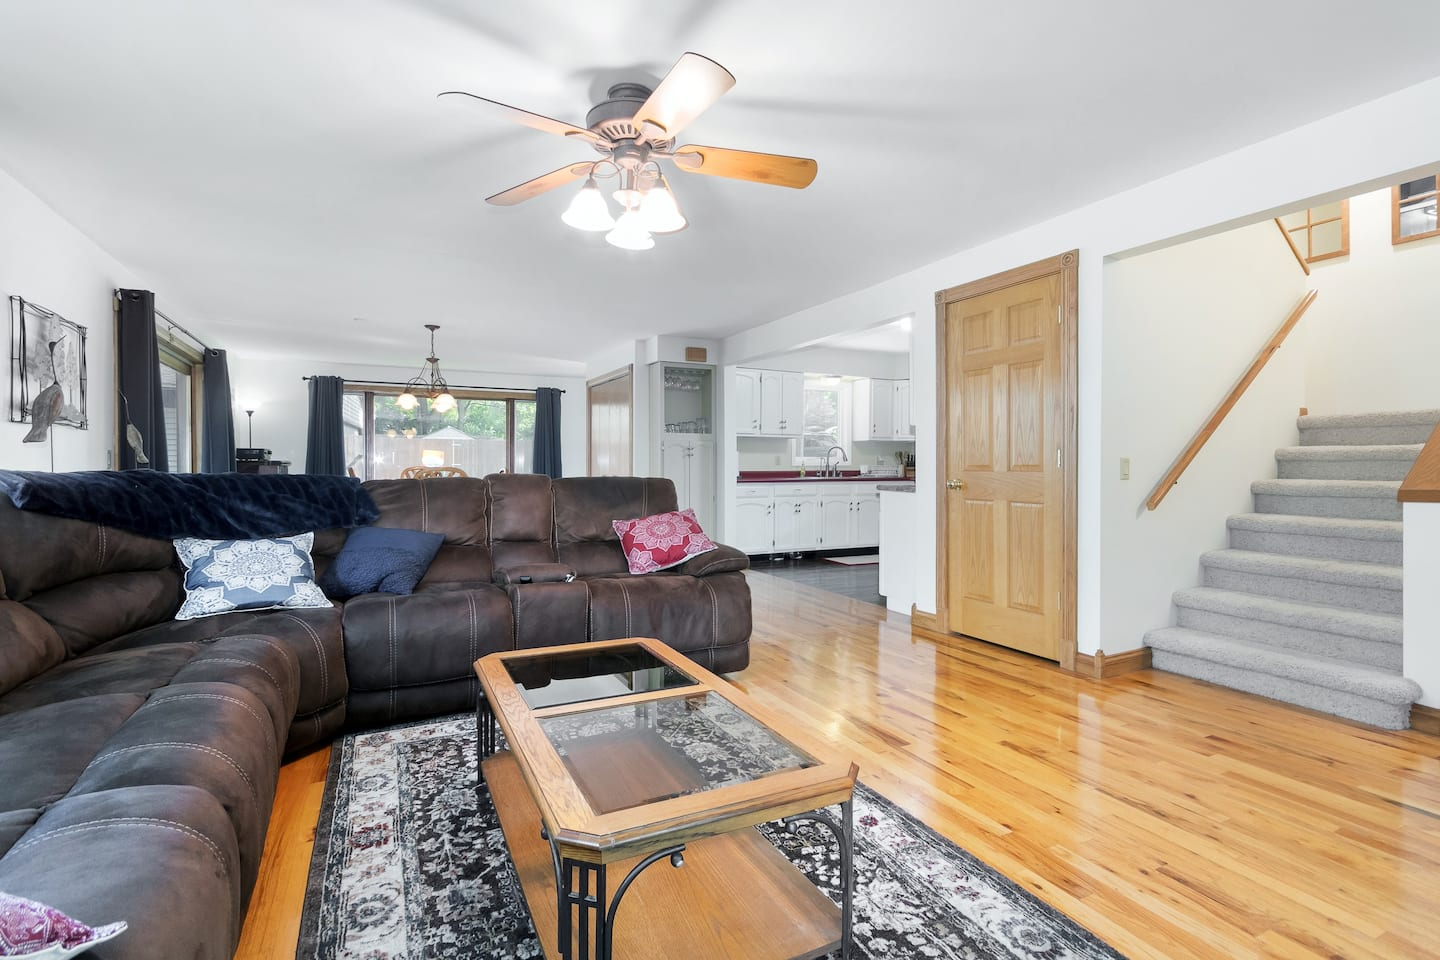 Best Airbnb in Madison for Large Groups